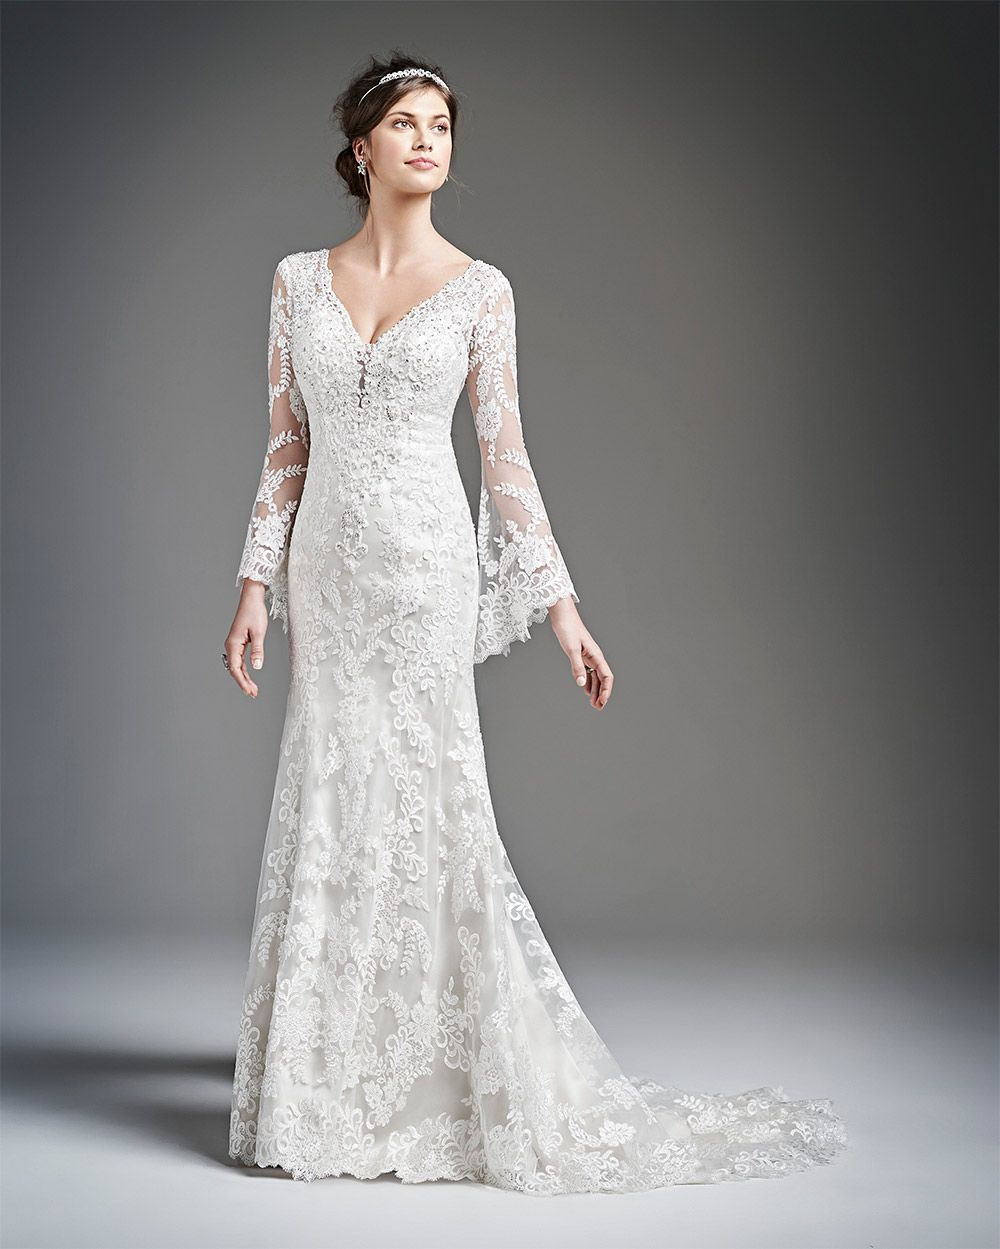 Wedding Dresses for Older Brides | Wedding dress, Weddings and Wedding